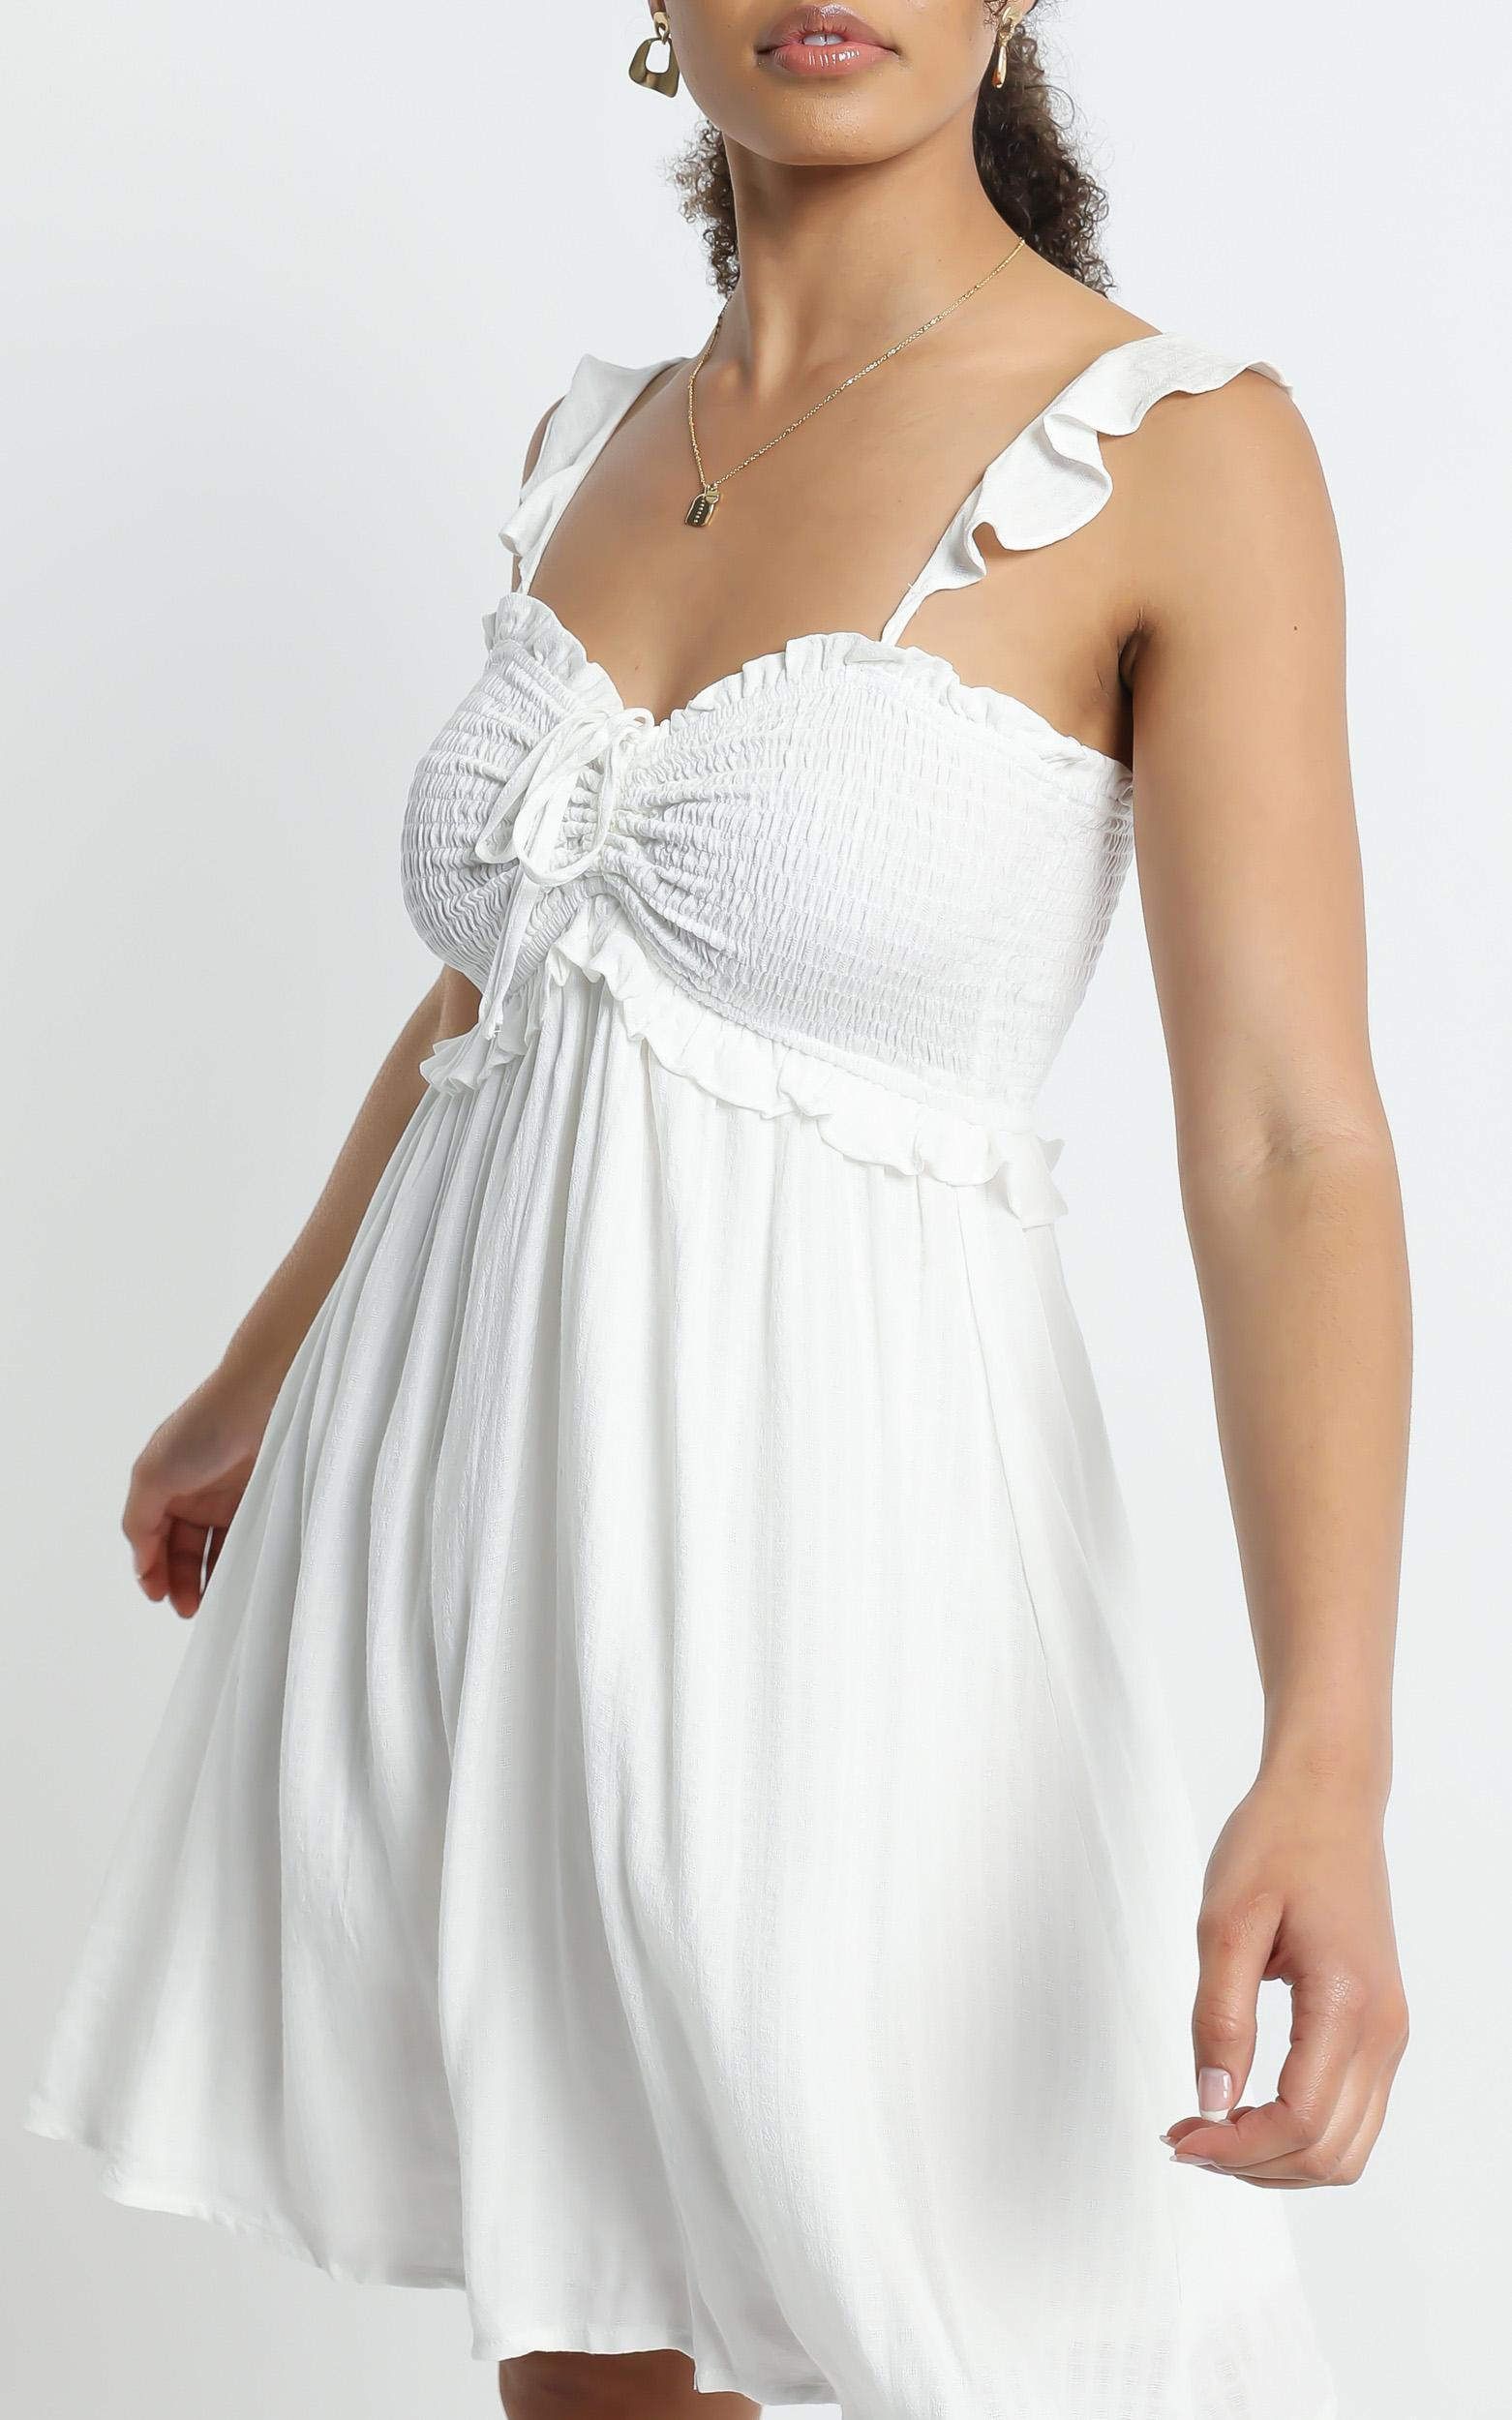 Rissa Dress in White - 6 (XS), White, hi-res image number null